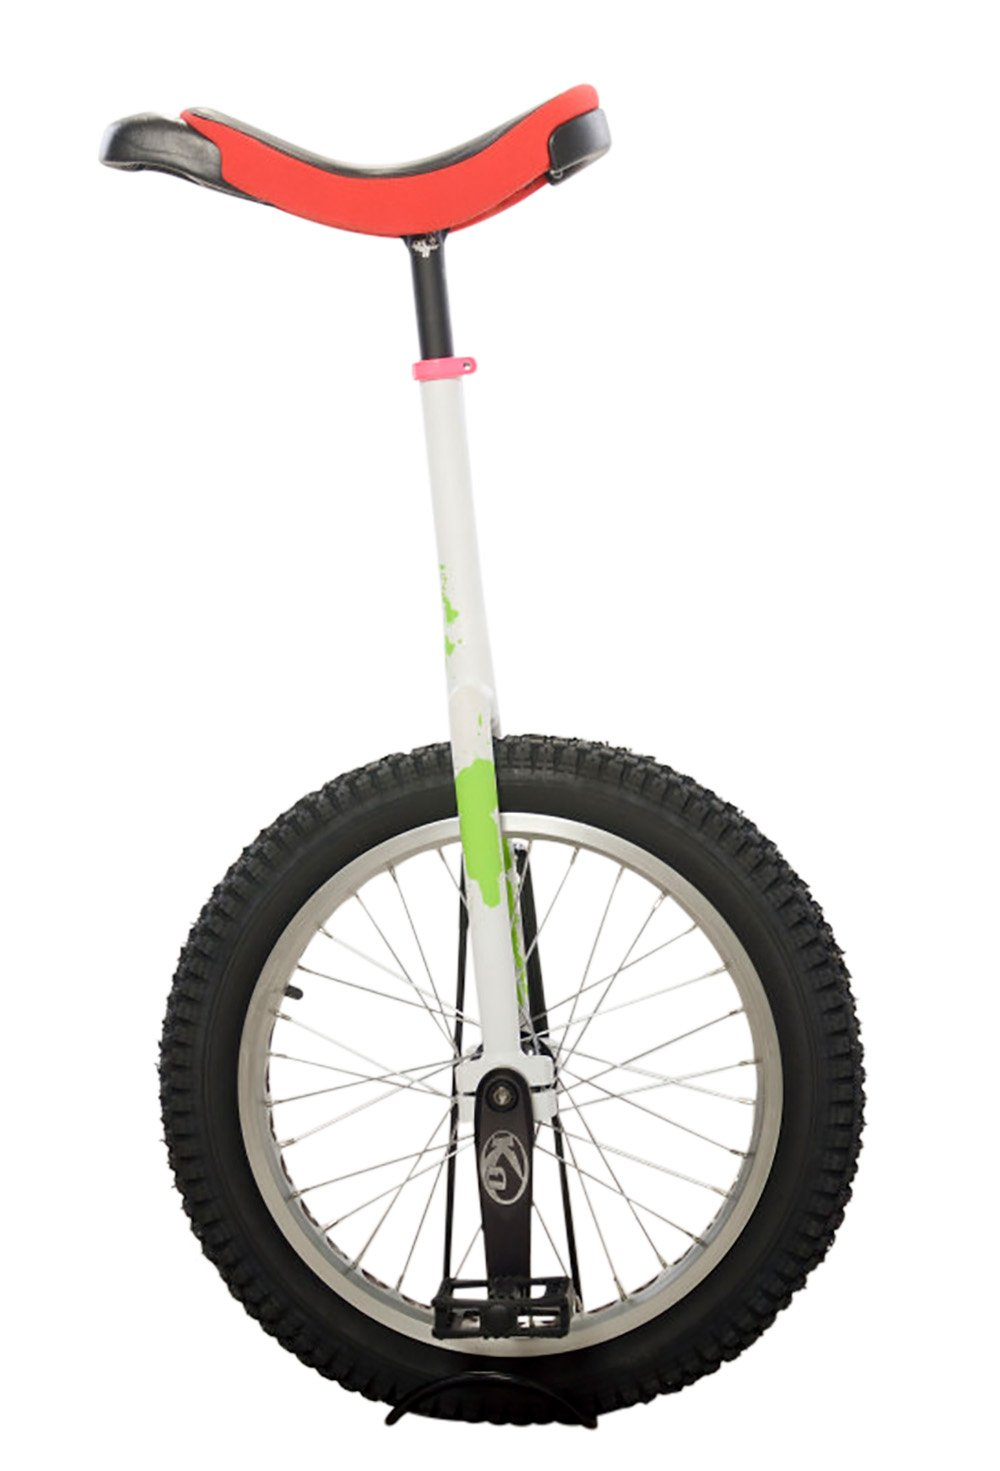 Koxx Troll 20 Trials Unicycle, Red/White with Black Pedals and Silver Rims by Koxx